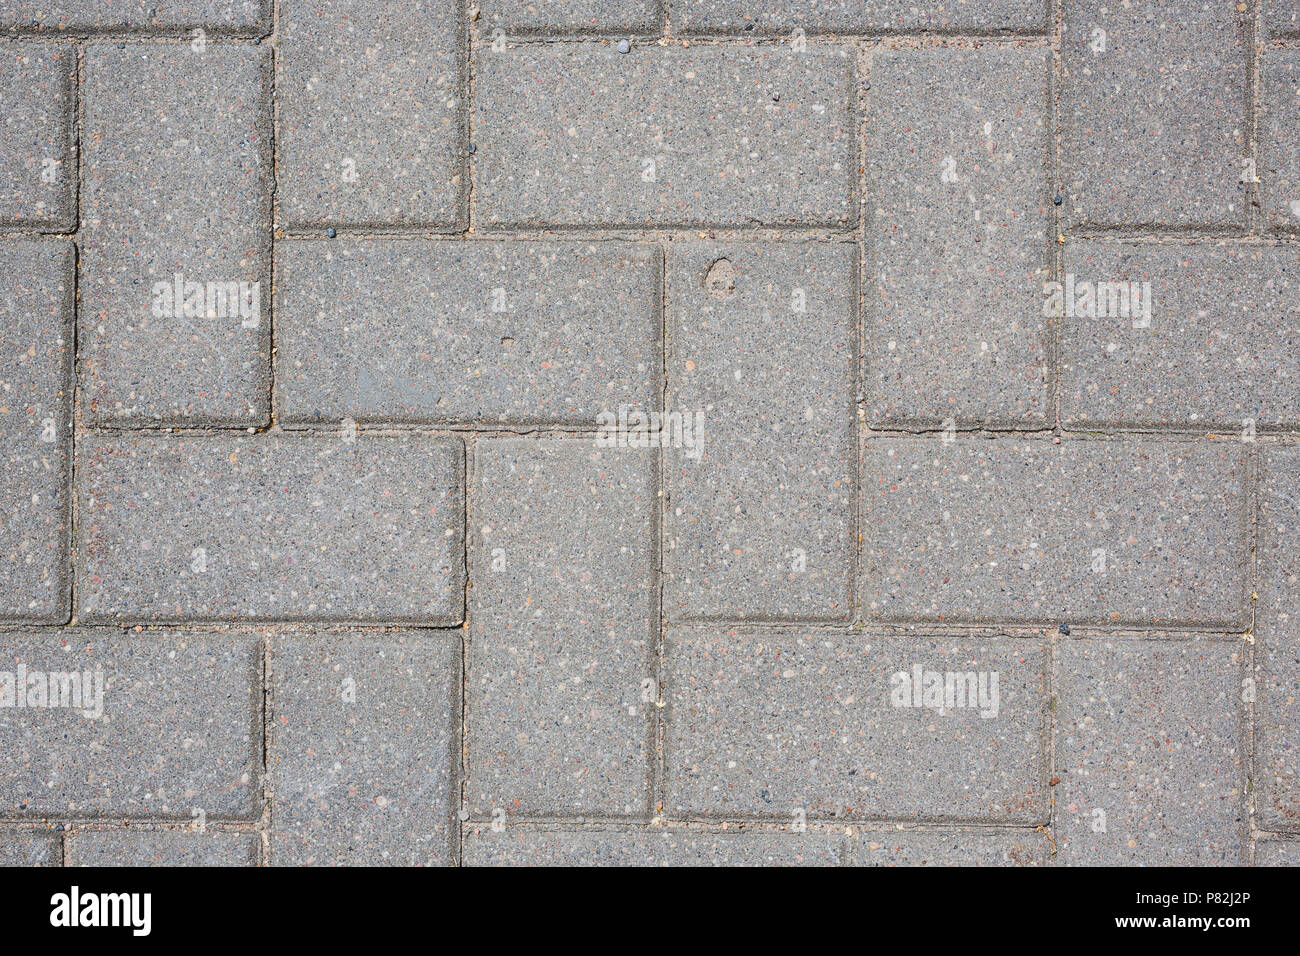 concrete tile on the ground pavement path abstract pattern texture background top shot Stock Photo